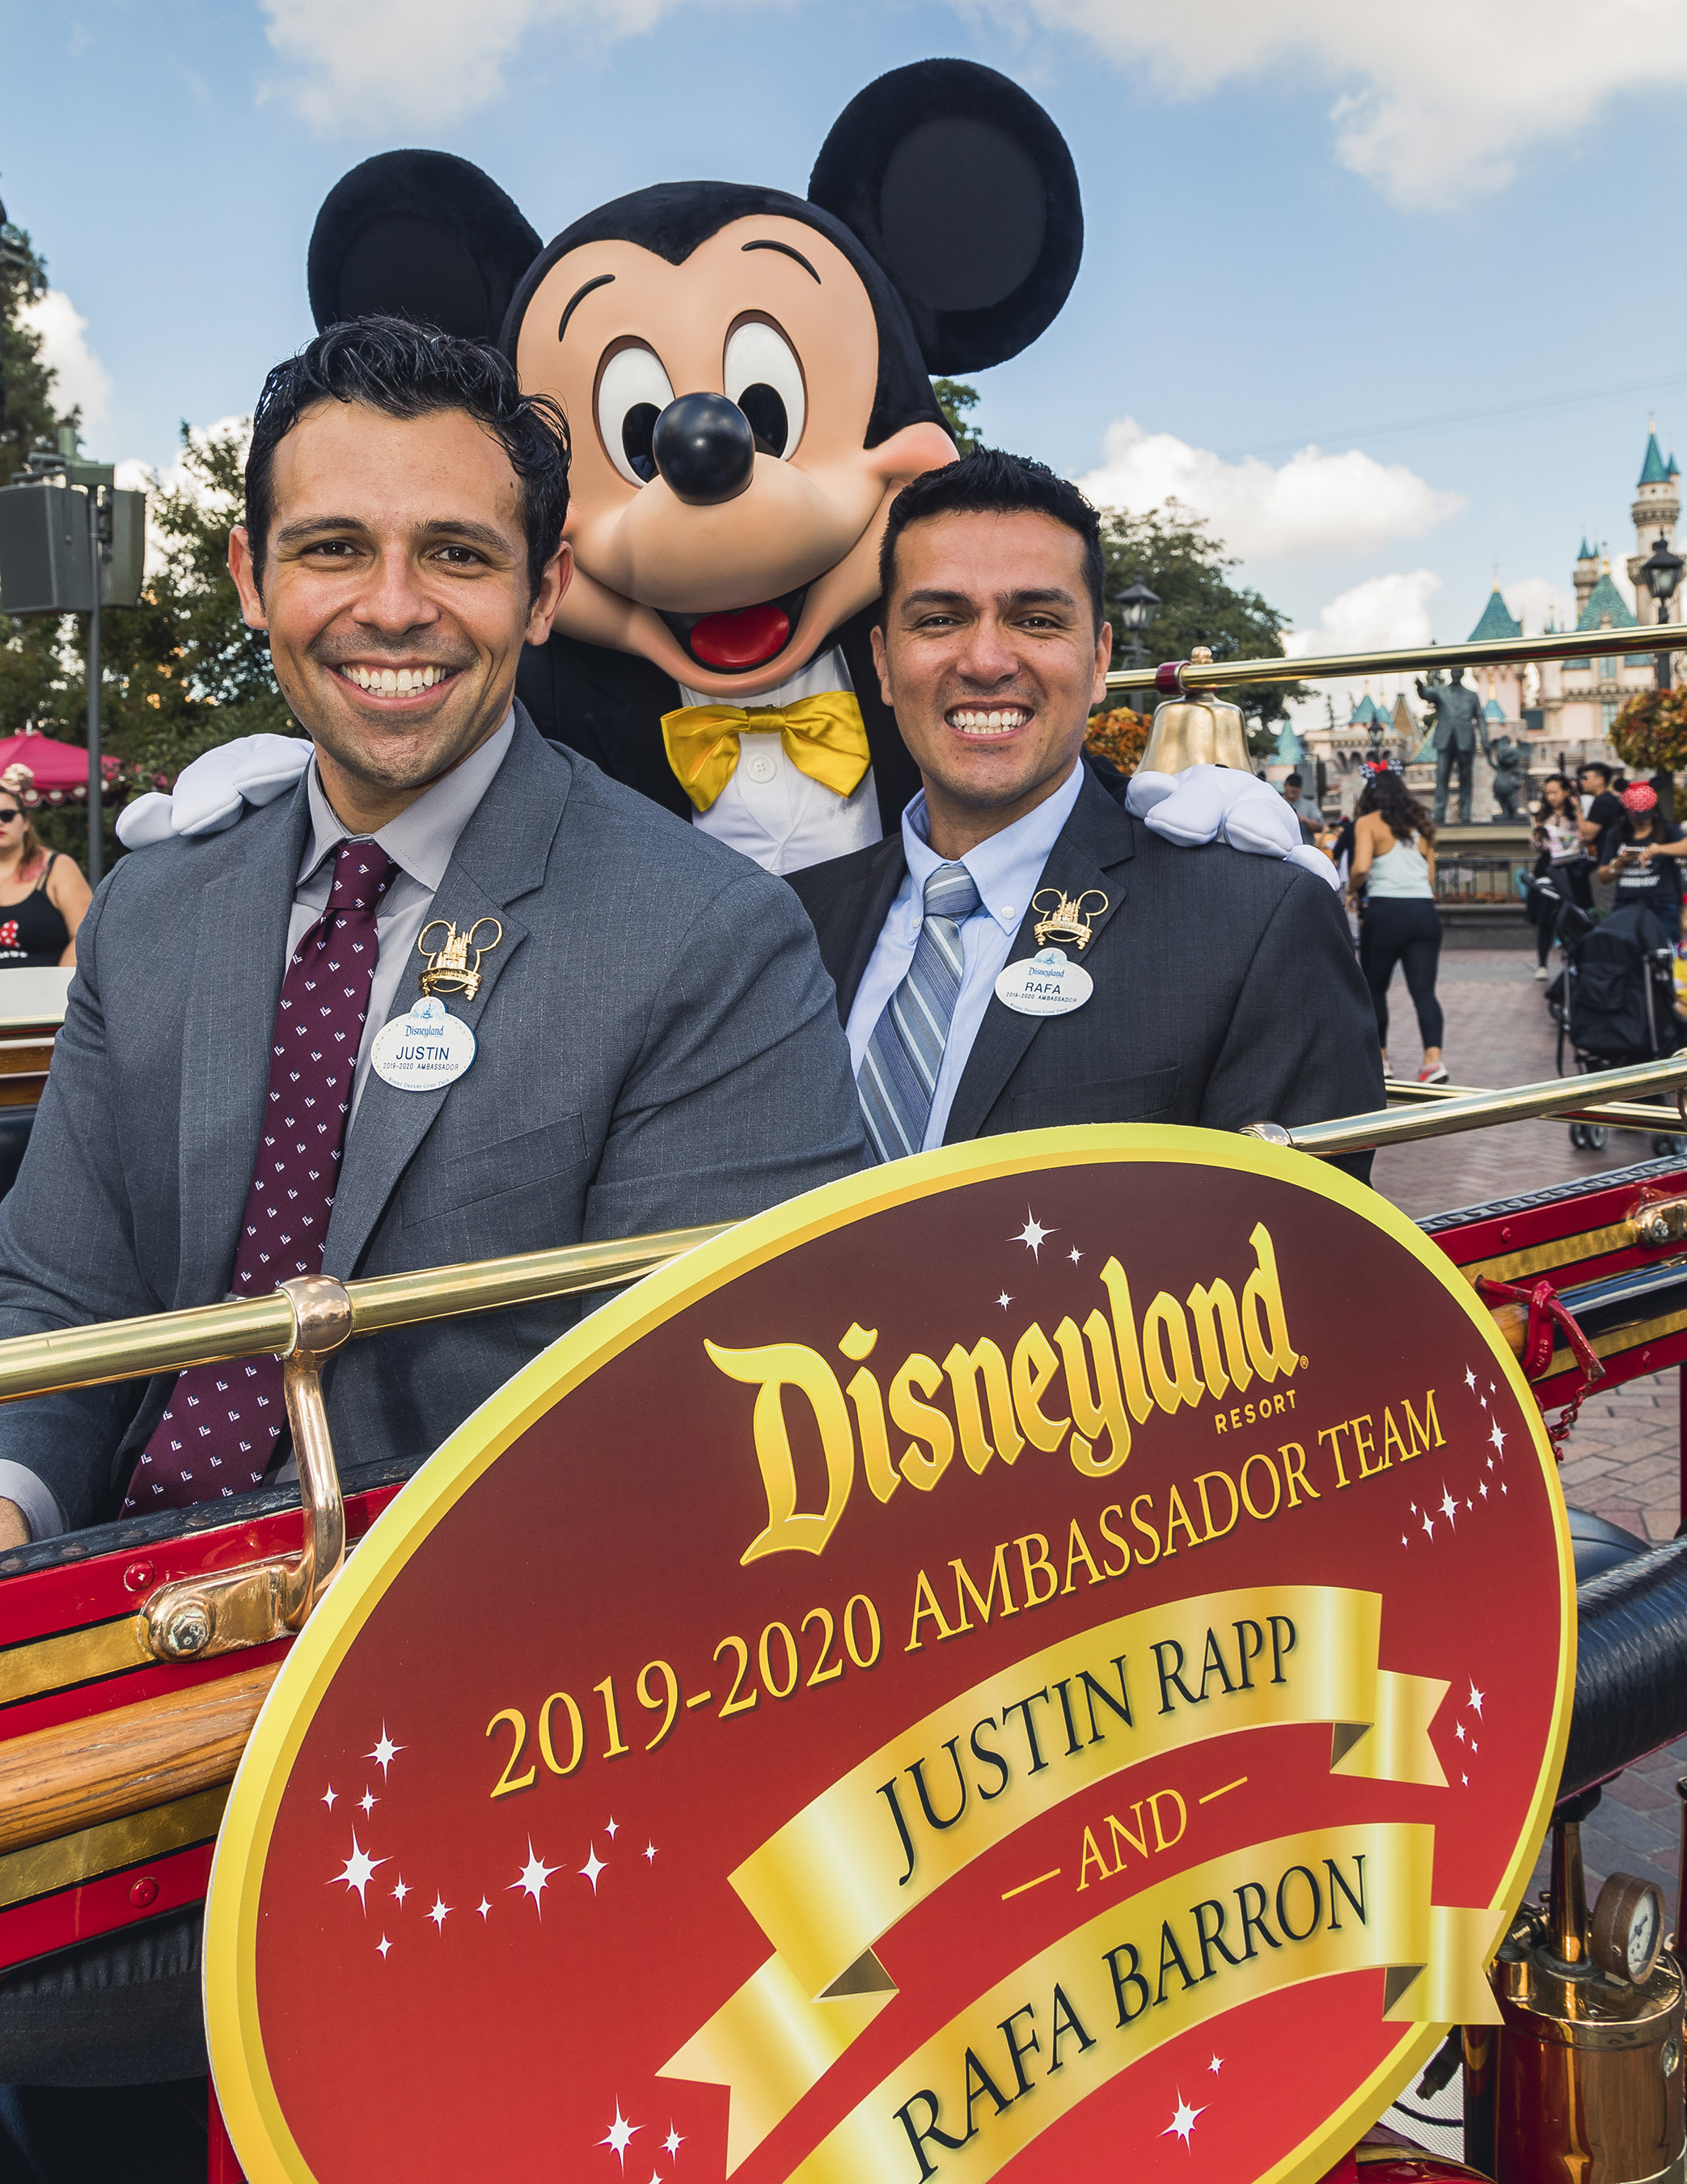 In a tradition dating back to 1965, Disneyland Resort President Josh D'Amaro announced that cast members Justin Rapp and Rafa Barron will represent the Disneyland Resort and its 30,000 cast members as the 2019-2020 Disney Ambassadors. Justin and Rafa celebrated in a cavalcade down Main Street, U.S.A., on October 4, 2018. (Disneyland Resort)